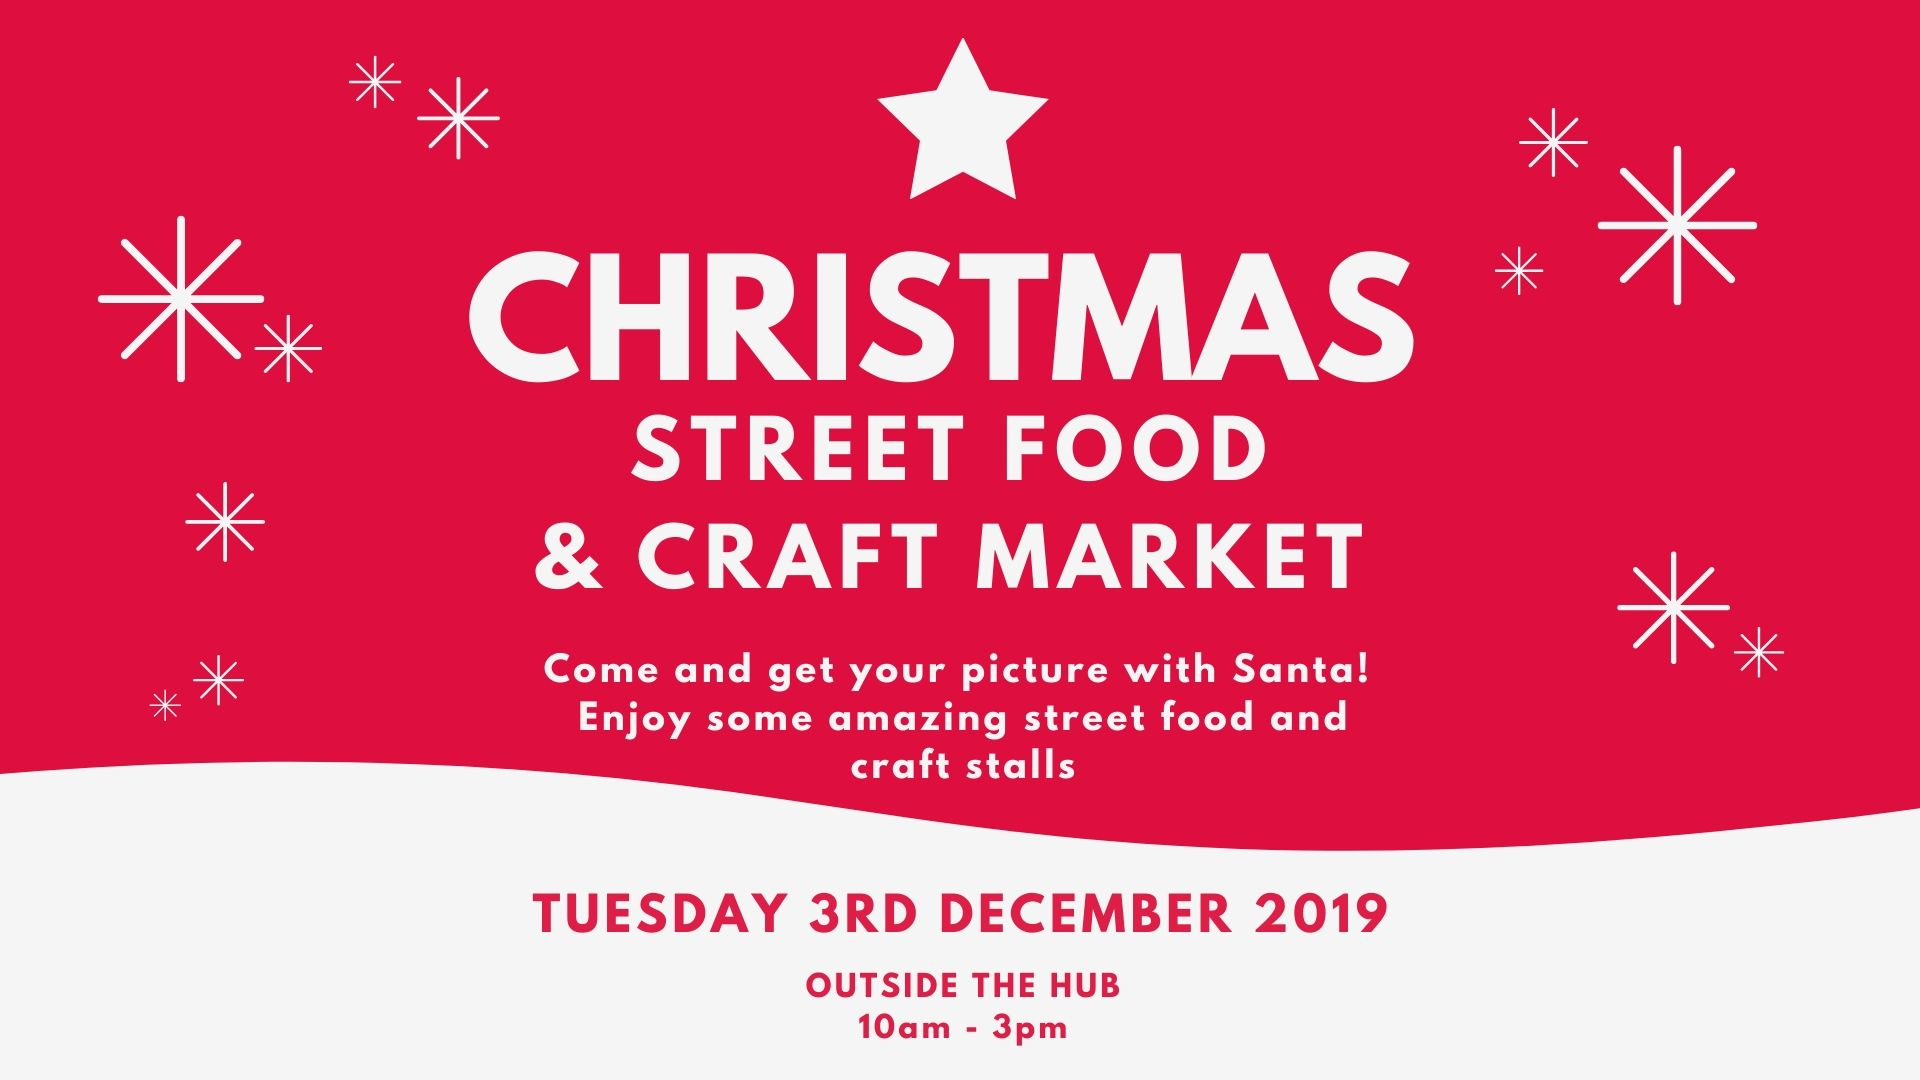 Christmas Street Food and Craft Market